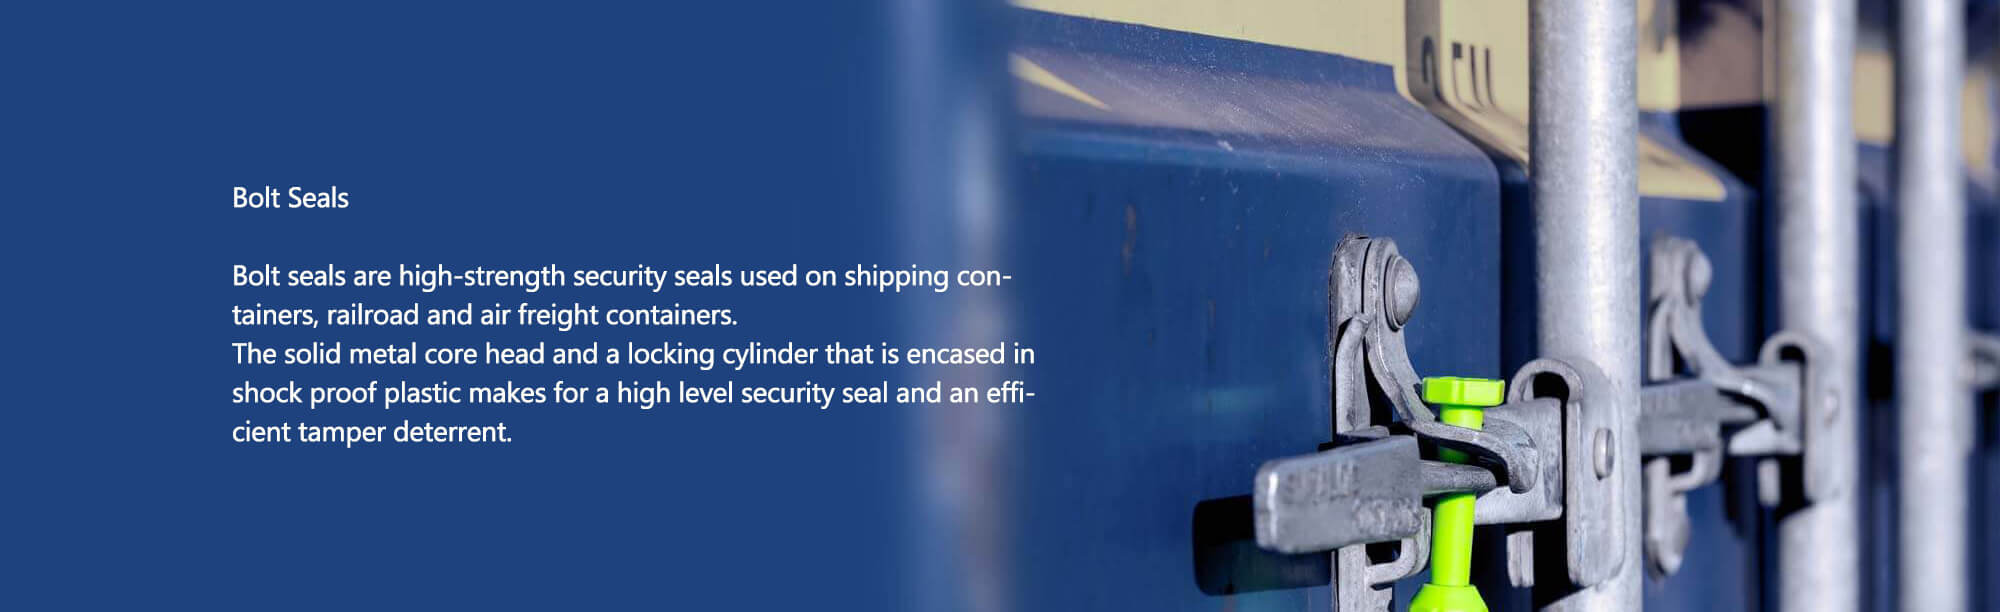 bolt seals are high-strength security seals